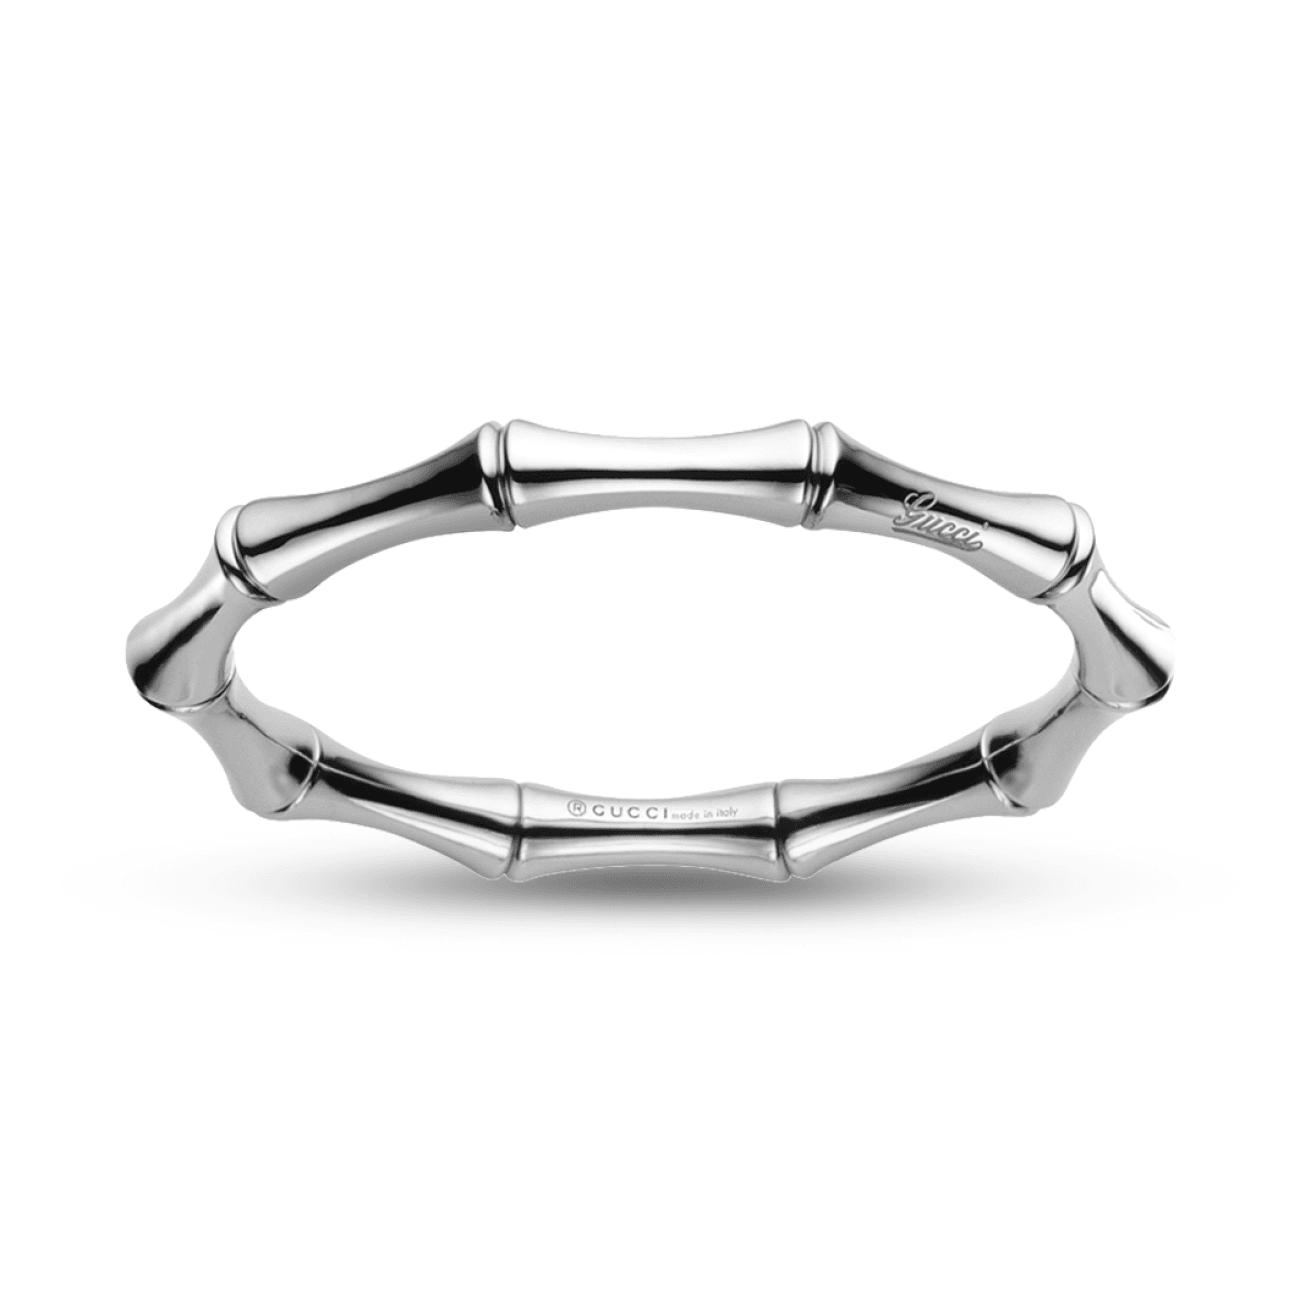 Gucci Jewelry - Bamboo Small Size White Gold Bracelet | Manfredi Jewels